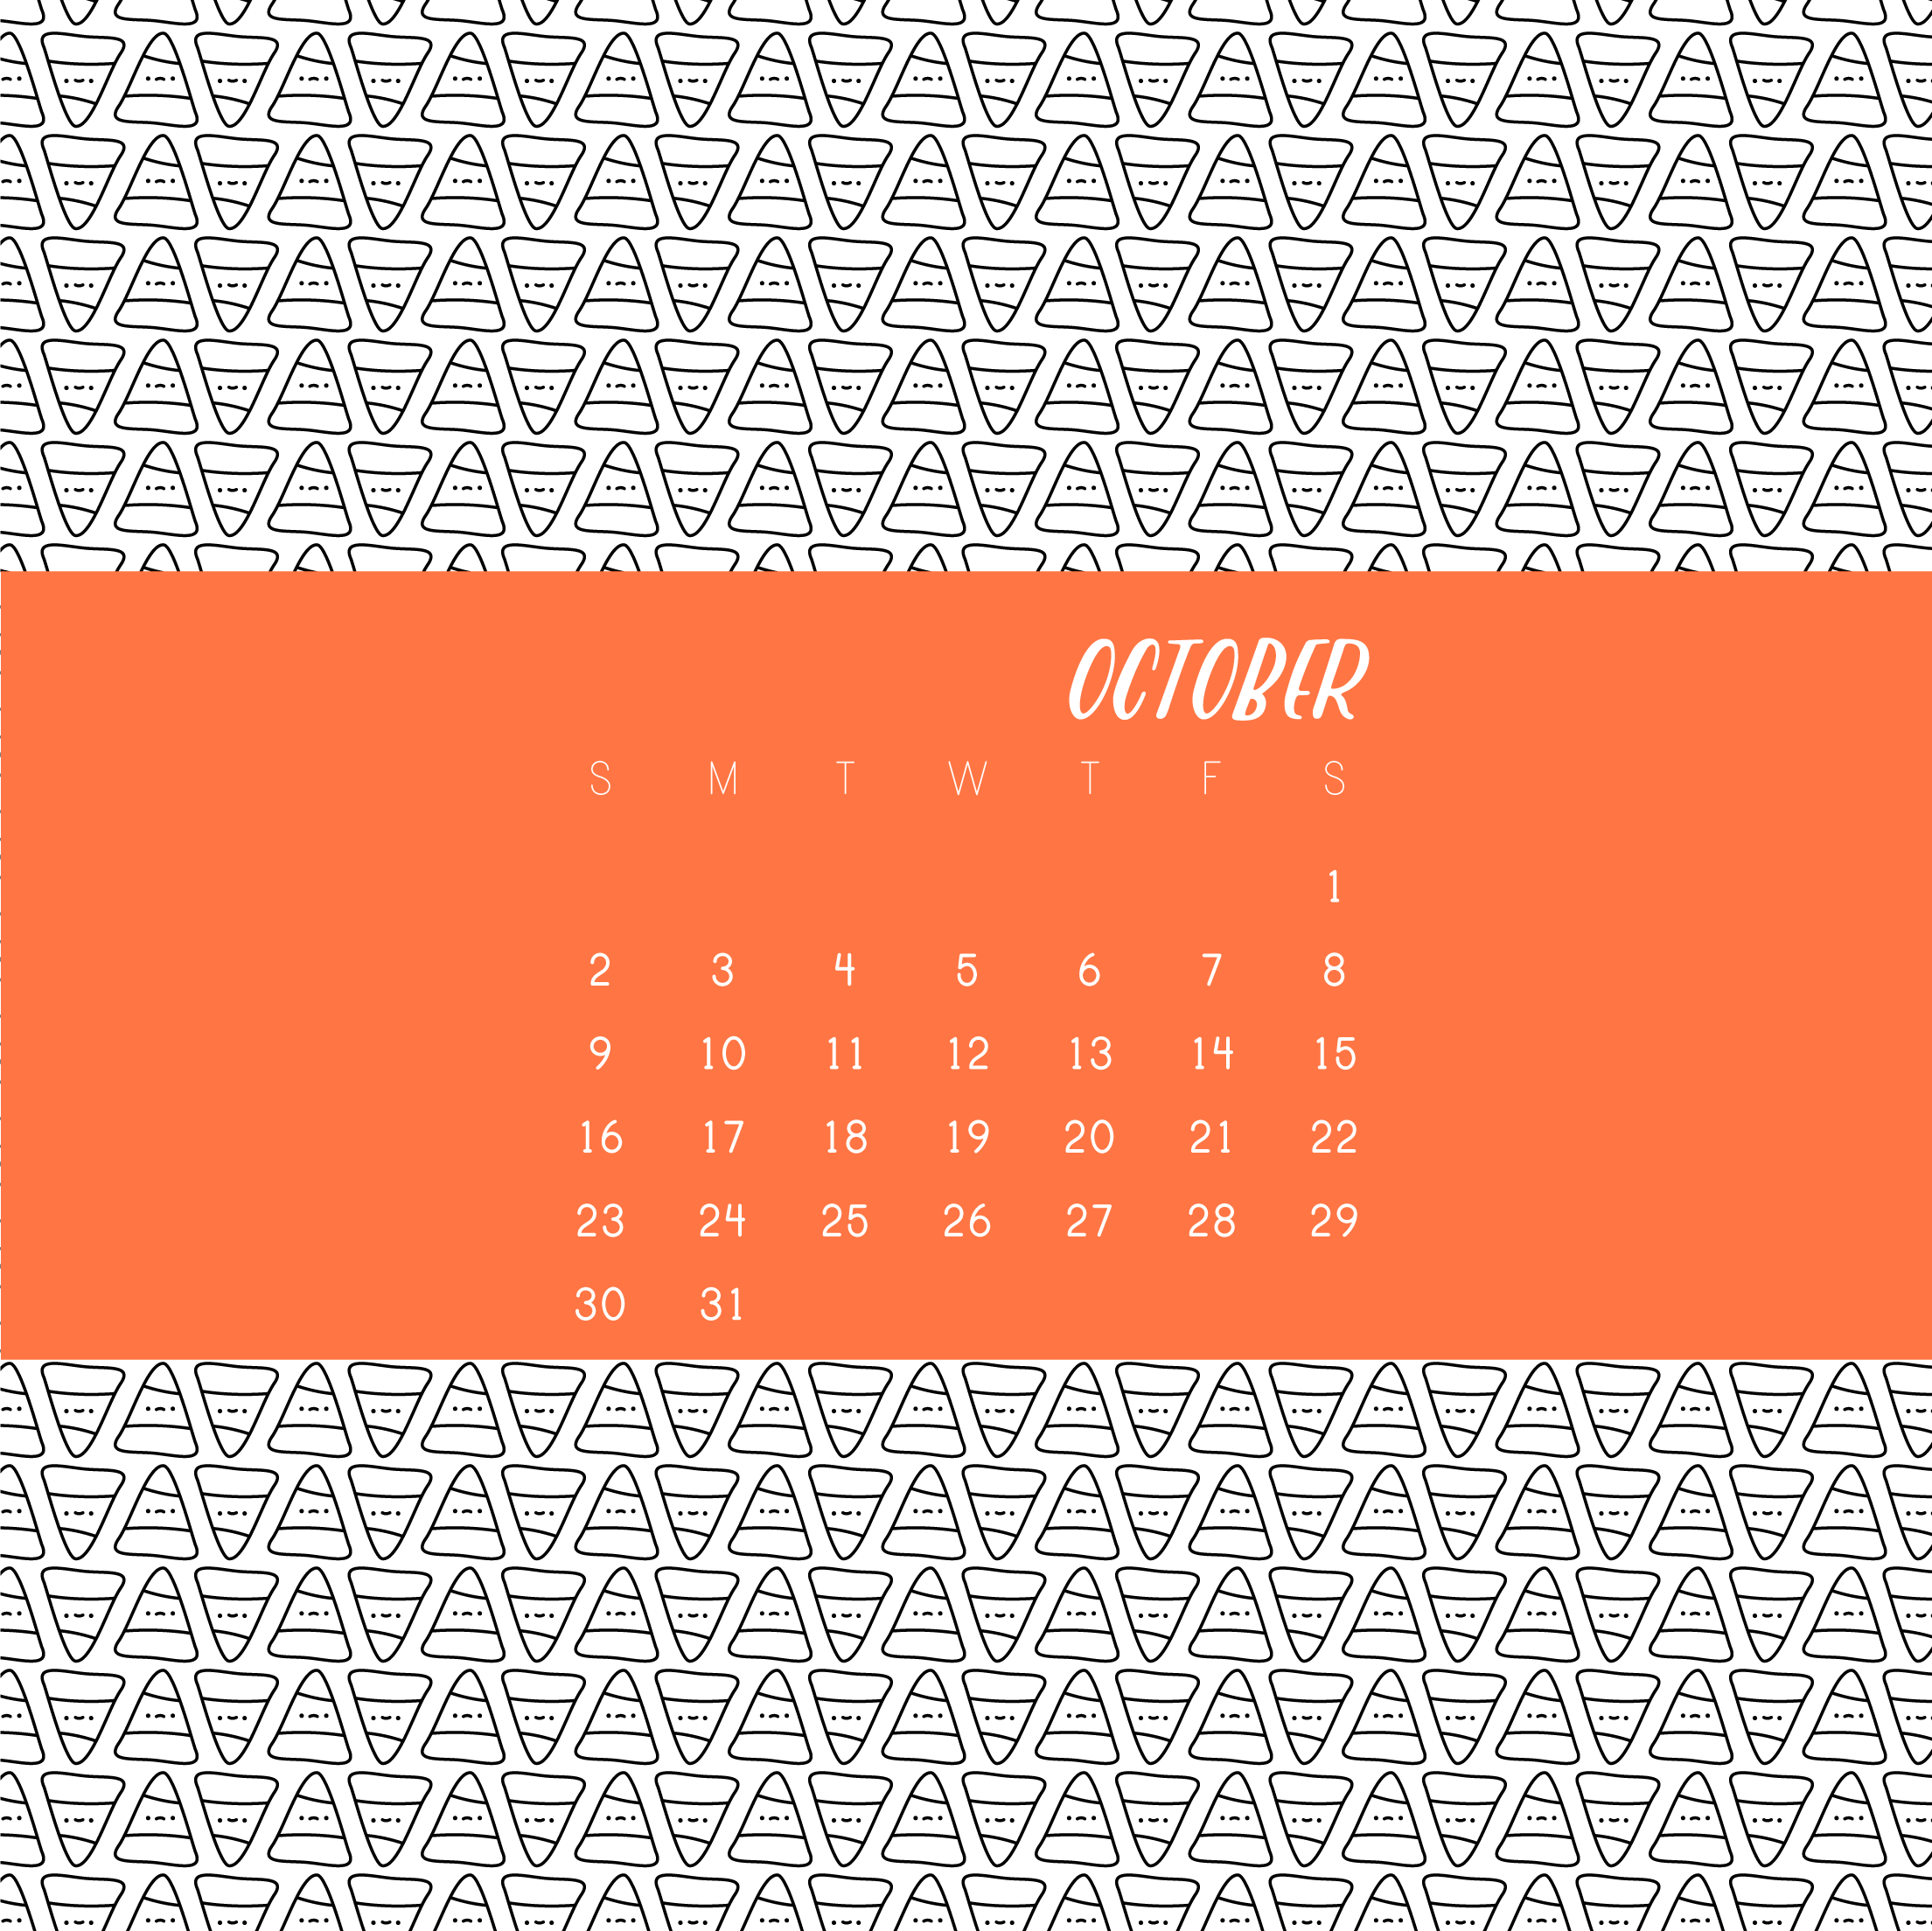 Calendar Old Cranky Candy Corn For A New October Wild